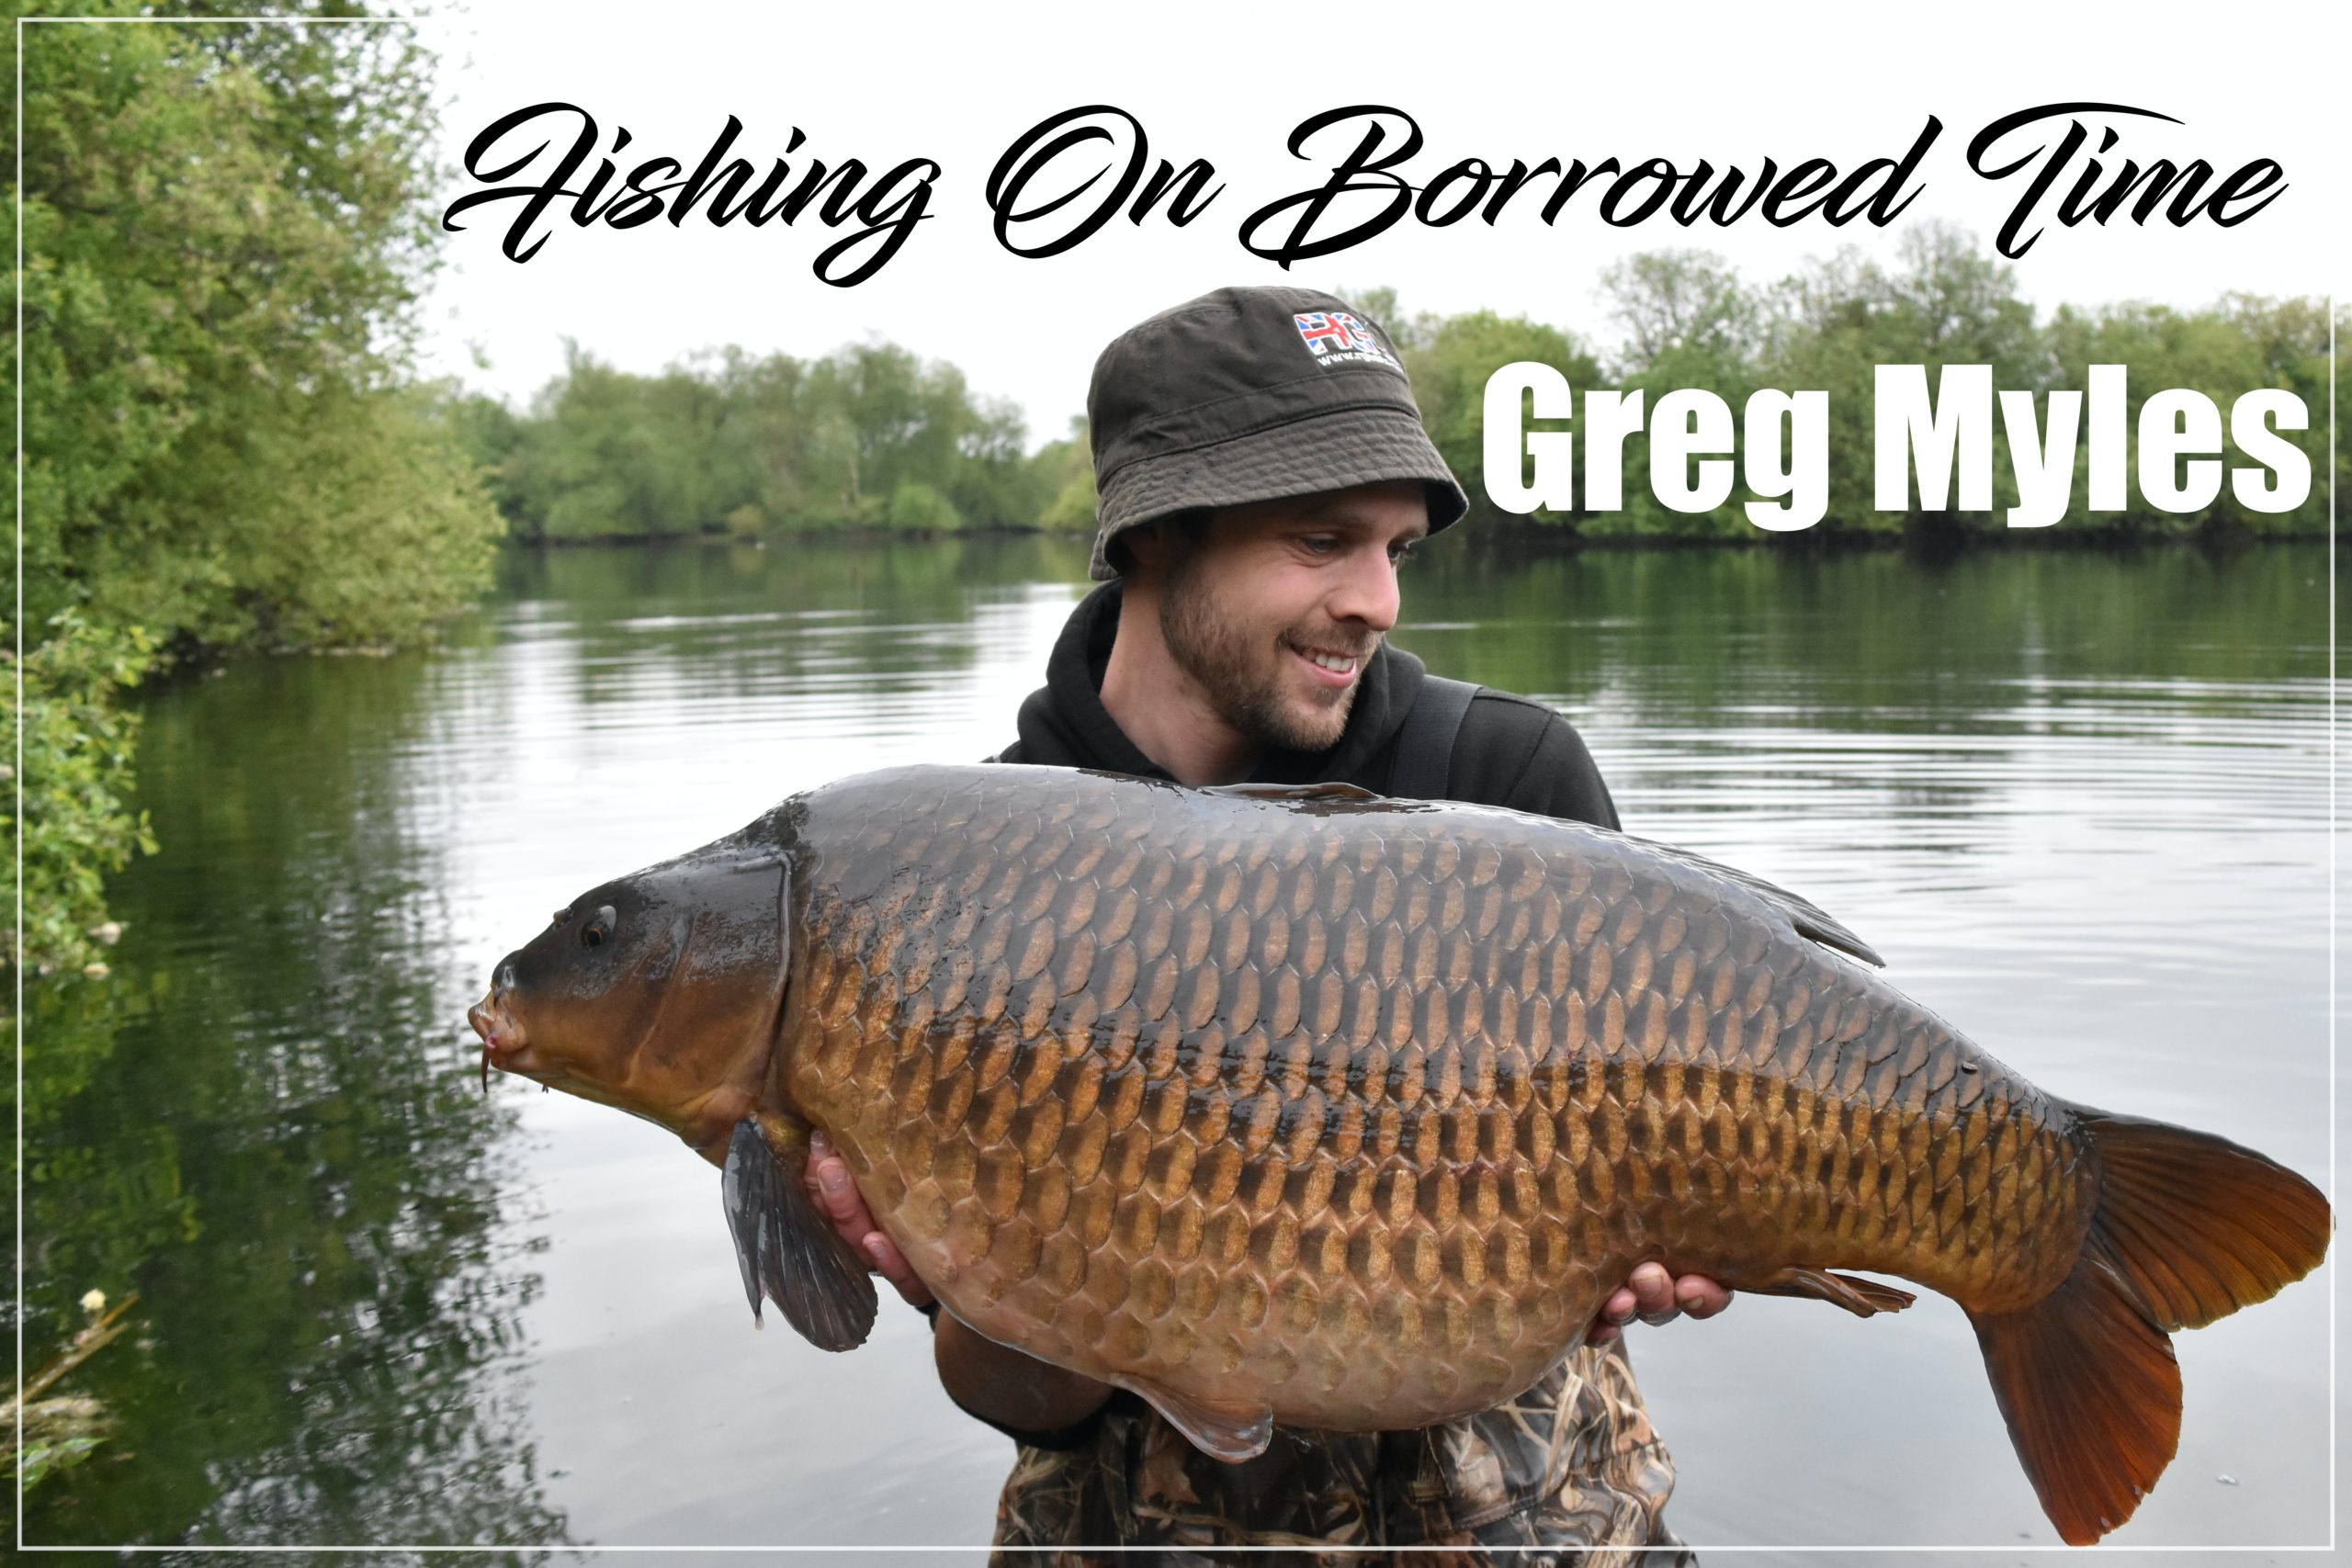 Fishing on borrowed time – By Greg Myles